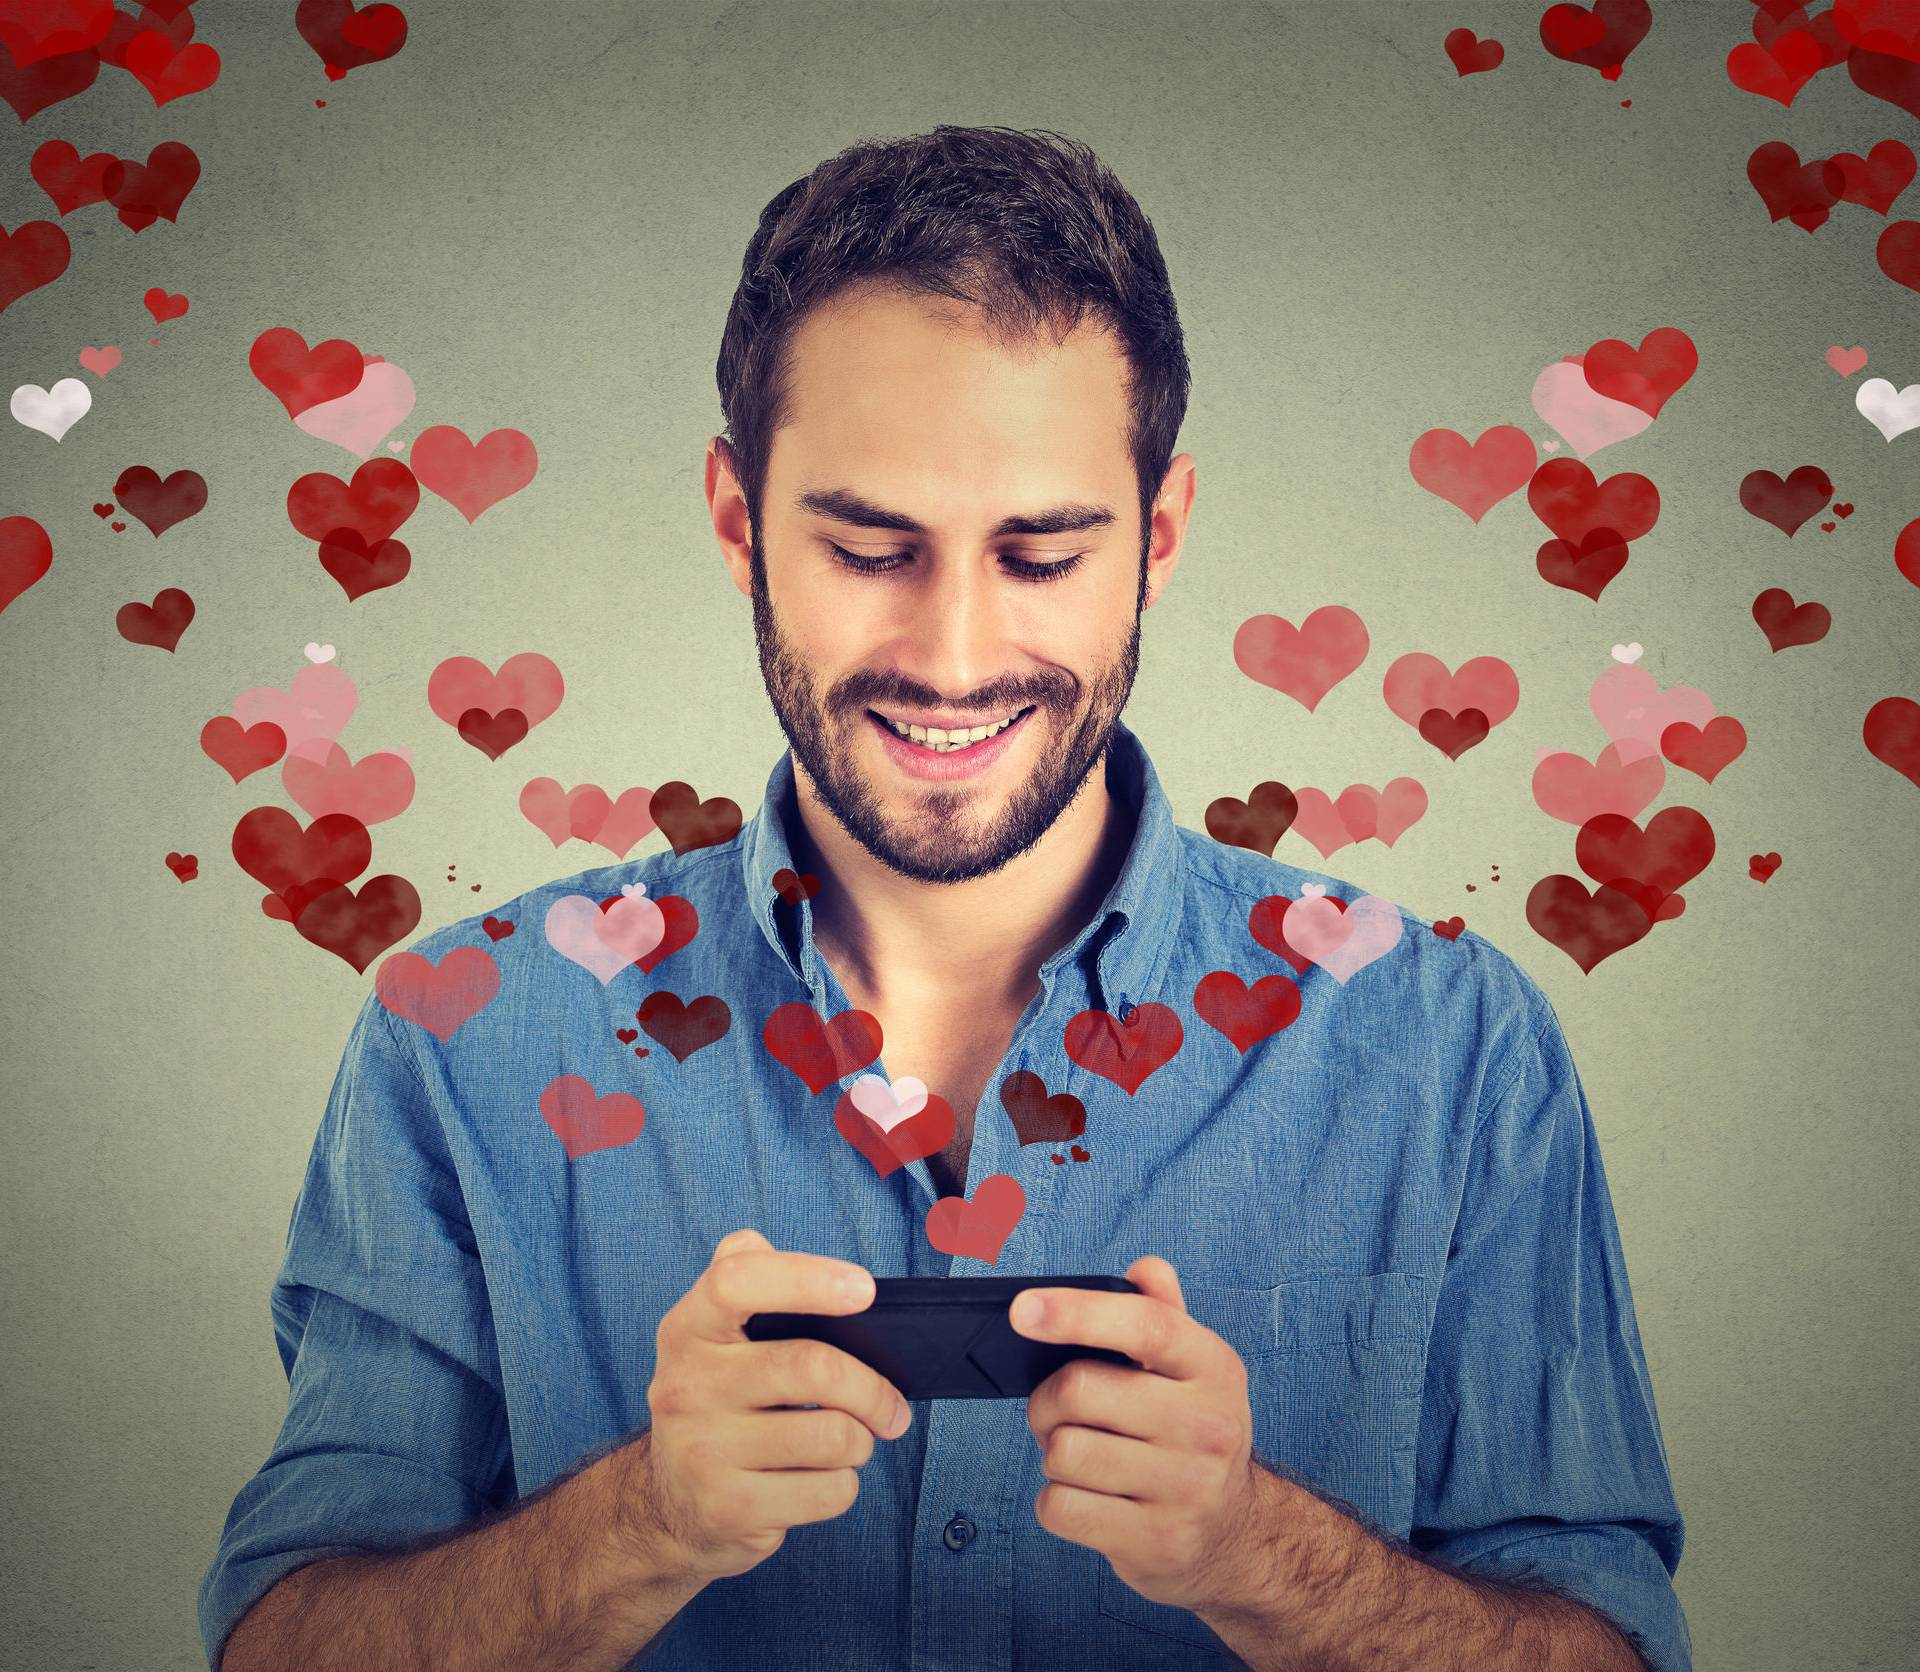 man sending love sms message on mobile phone with hearts flying away